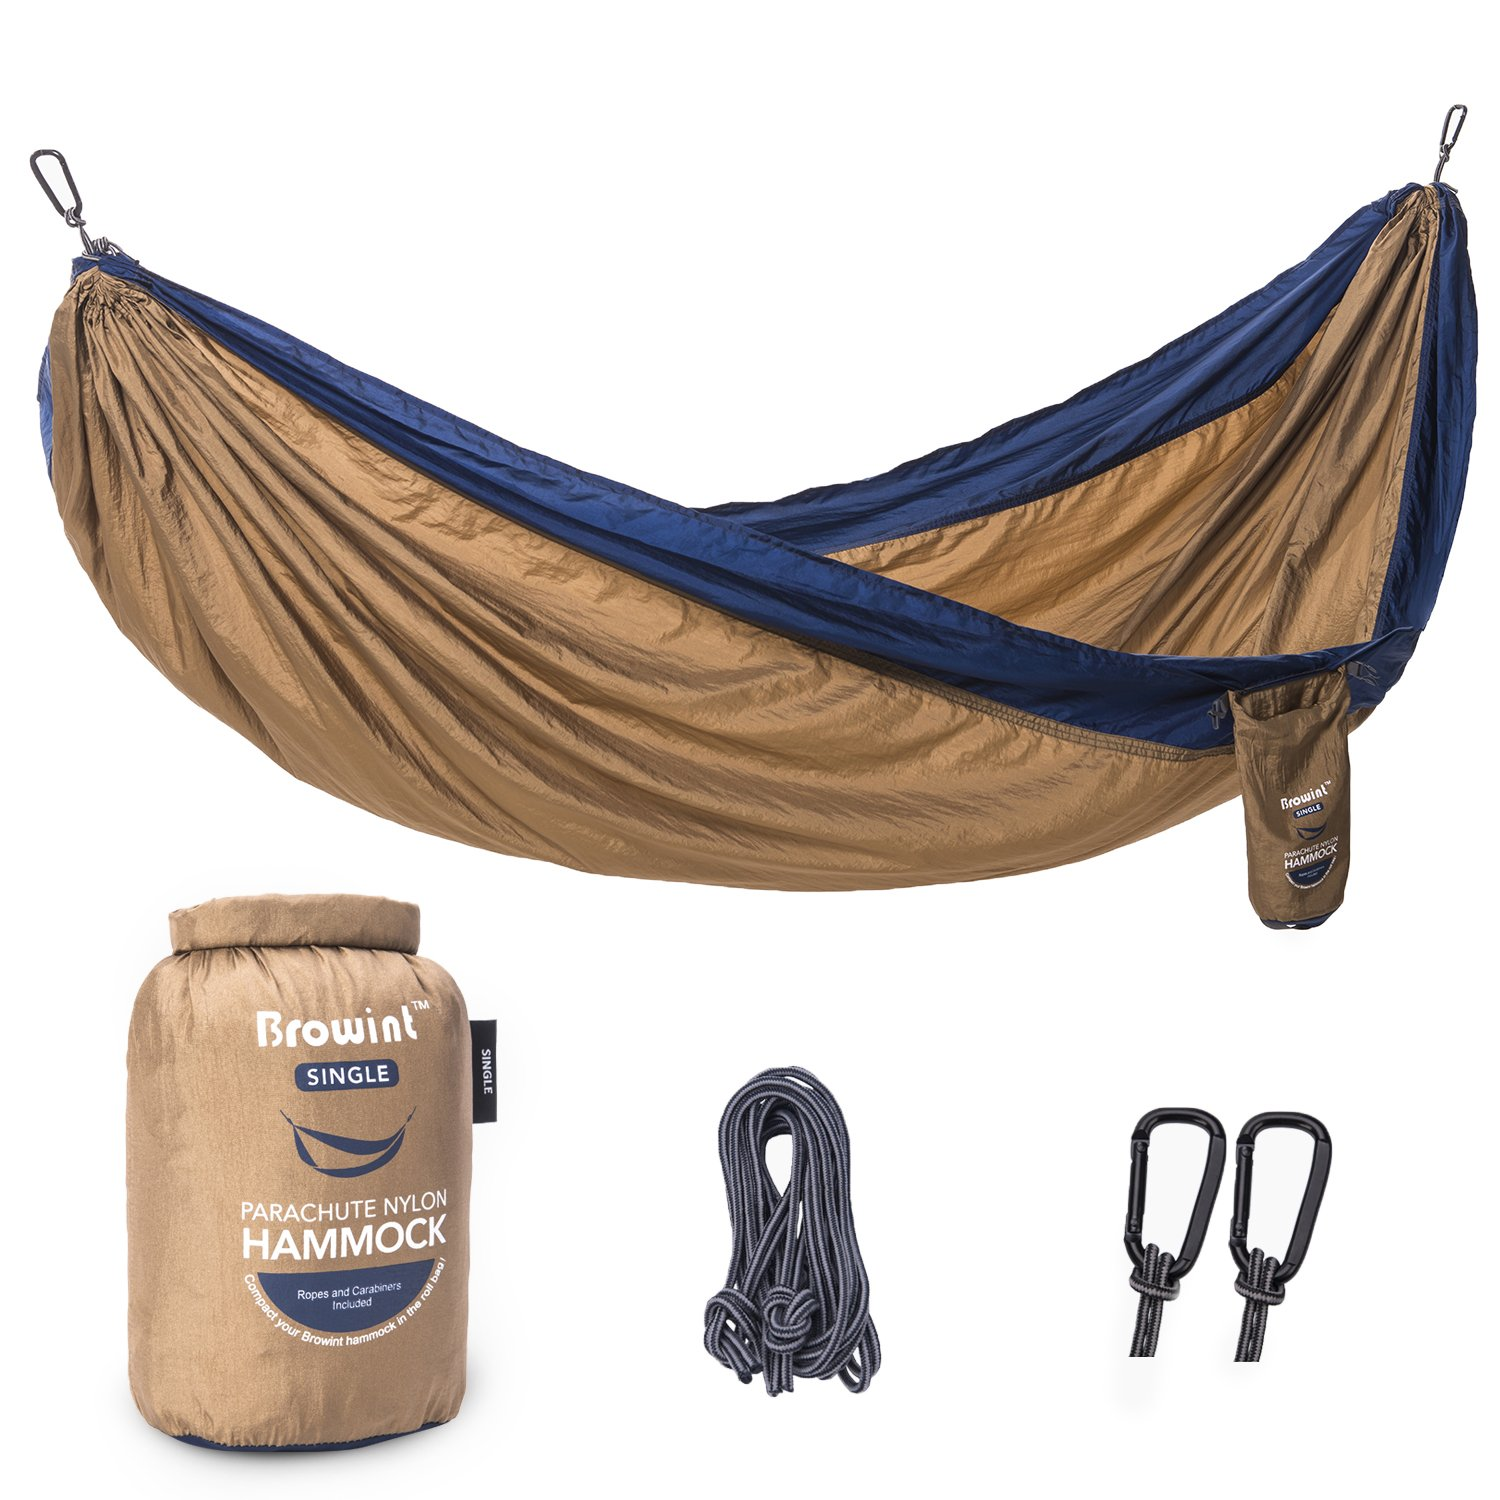 Browint Single Camping Hammock, 12 Colors, Lightweight & Unique 220T Parachute Nylon Portable Hammock, Best Outdoor Hammock for Backpacking, Camping, Hiking, Beach, Travel, Yard. 10' L x 5' W by Browint